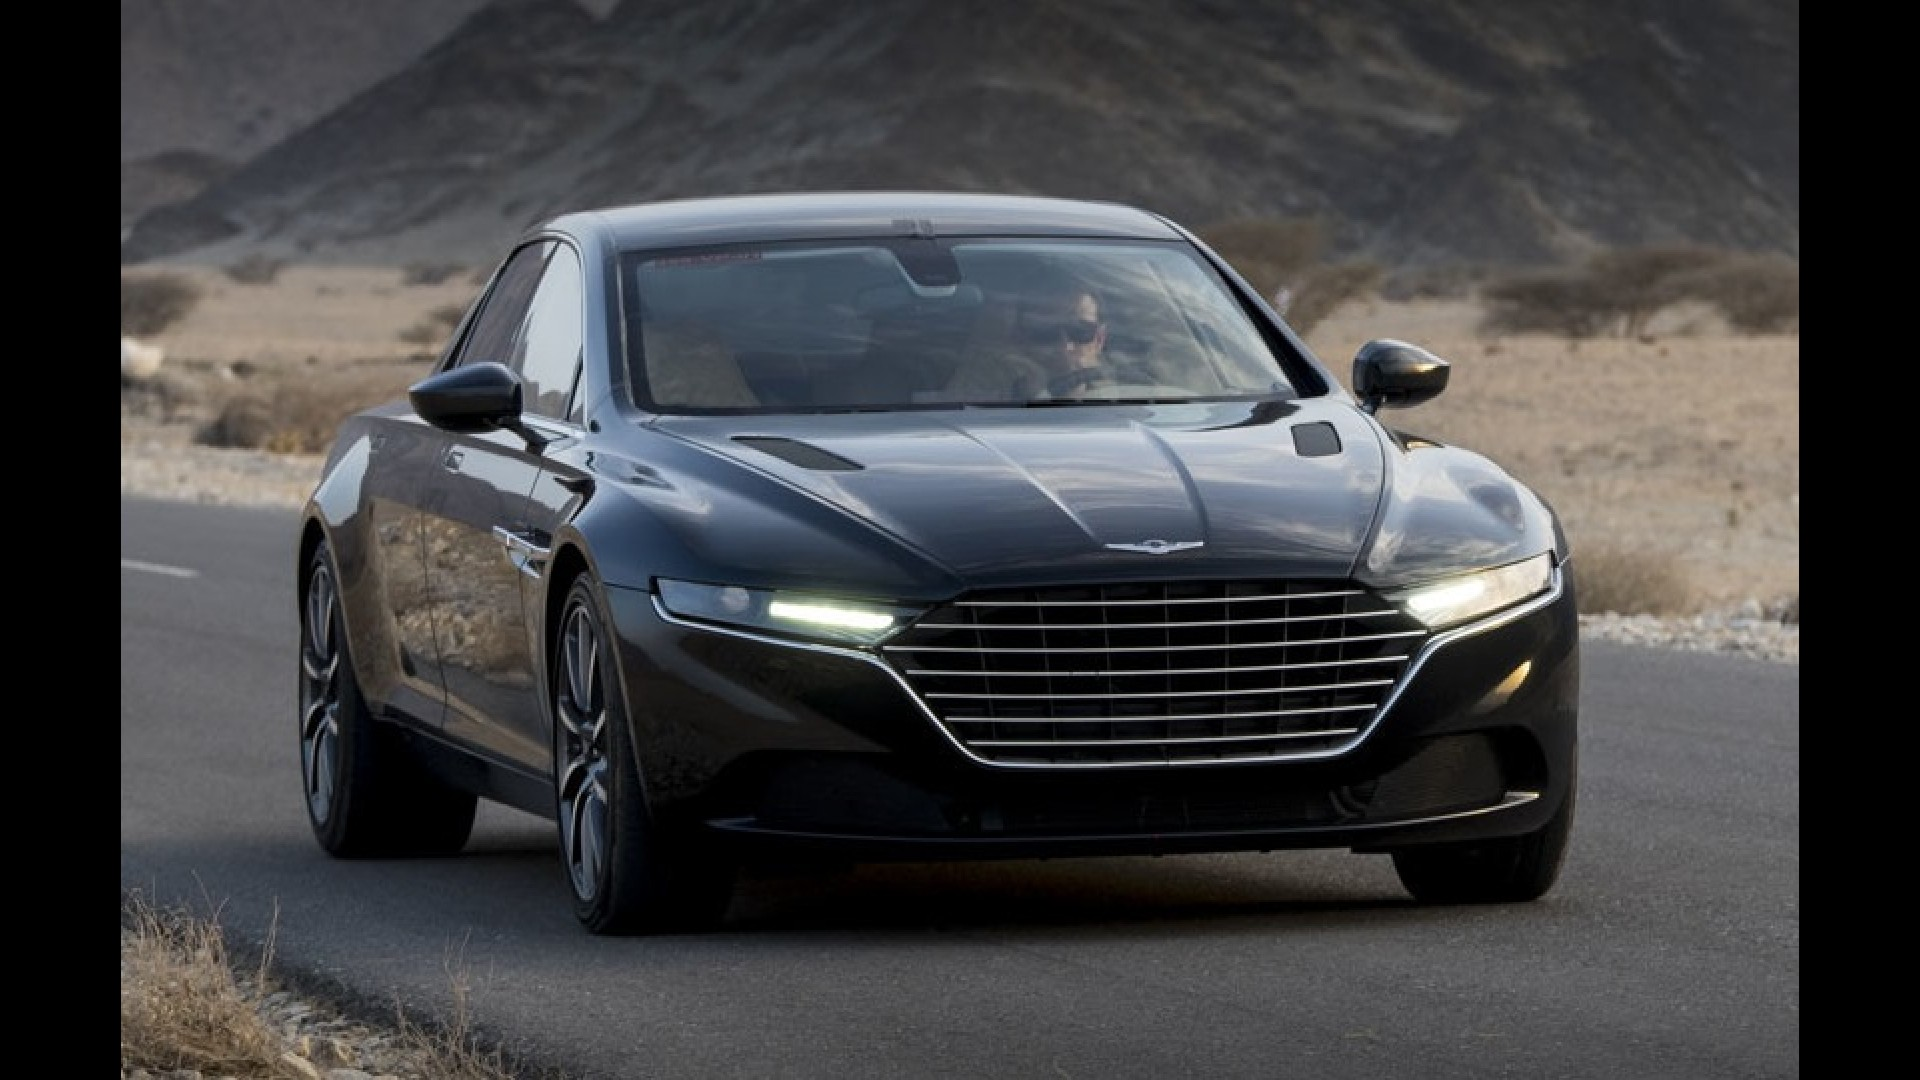 Aston Martin Revela Pela Primeira Vez O Interior Refinado Do Novo Lagonda Photo